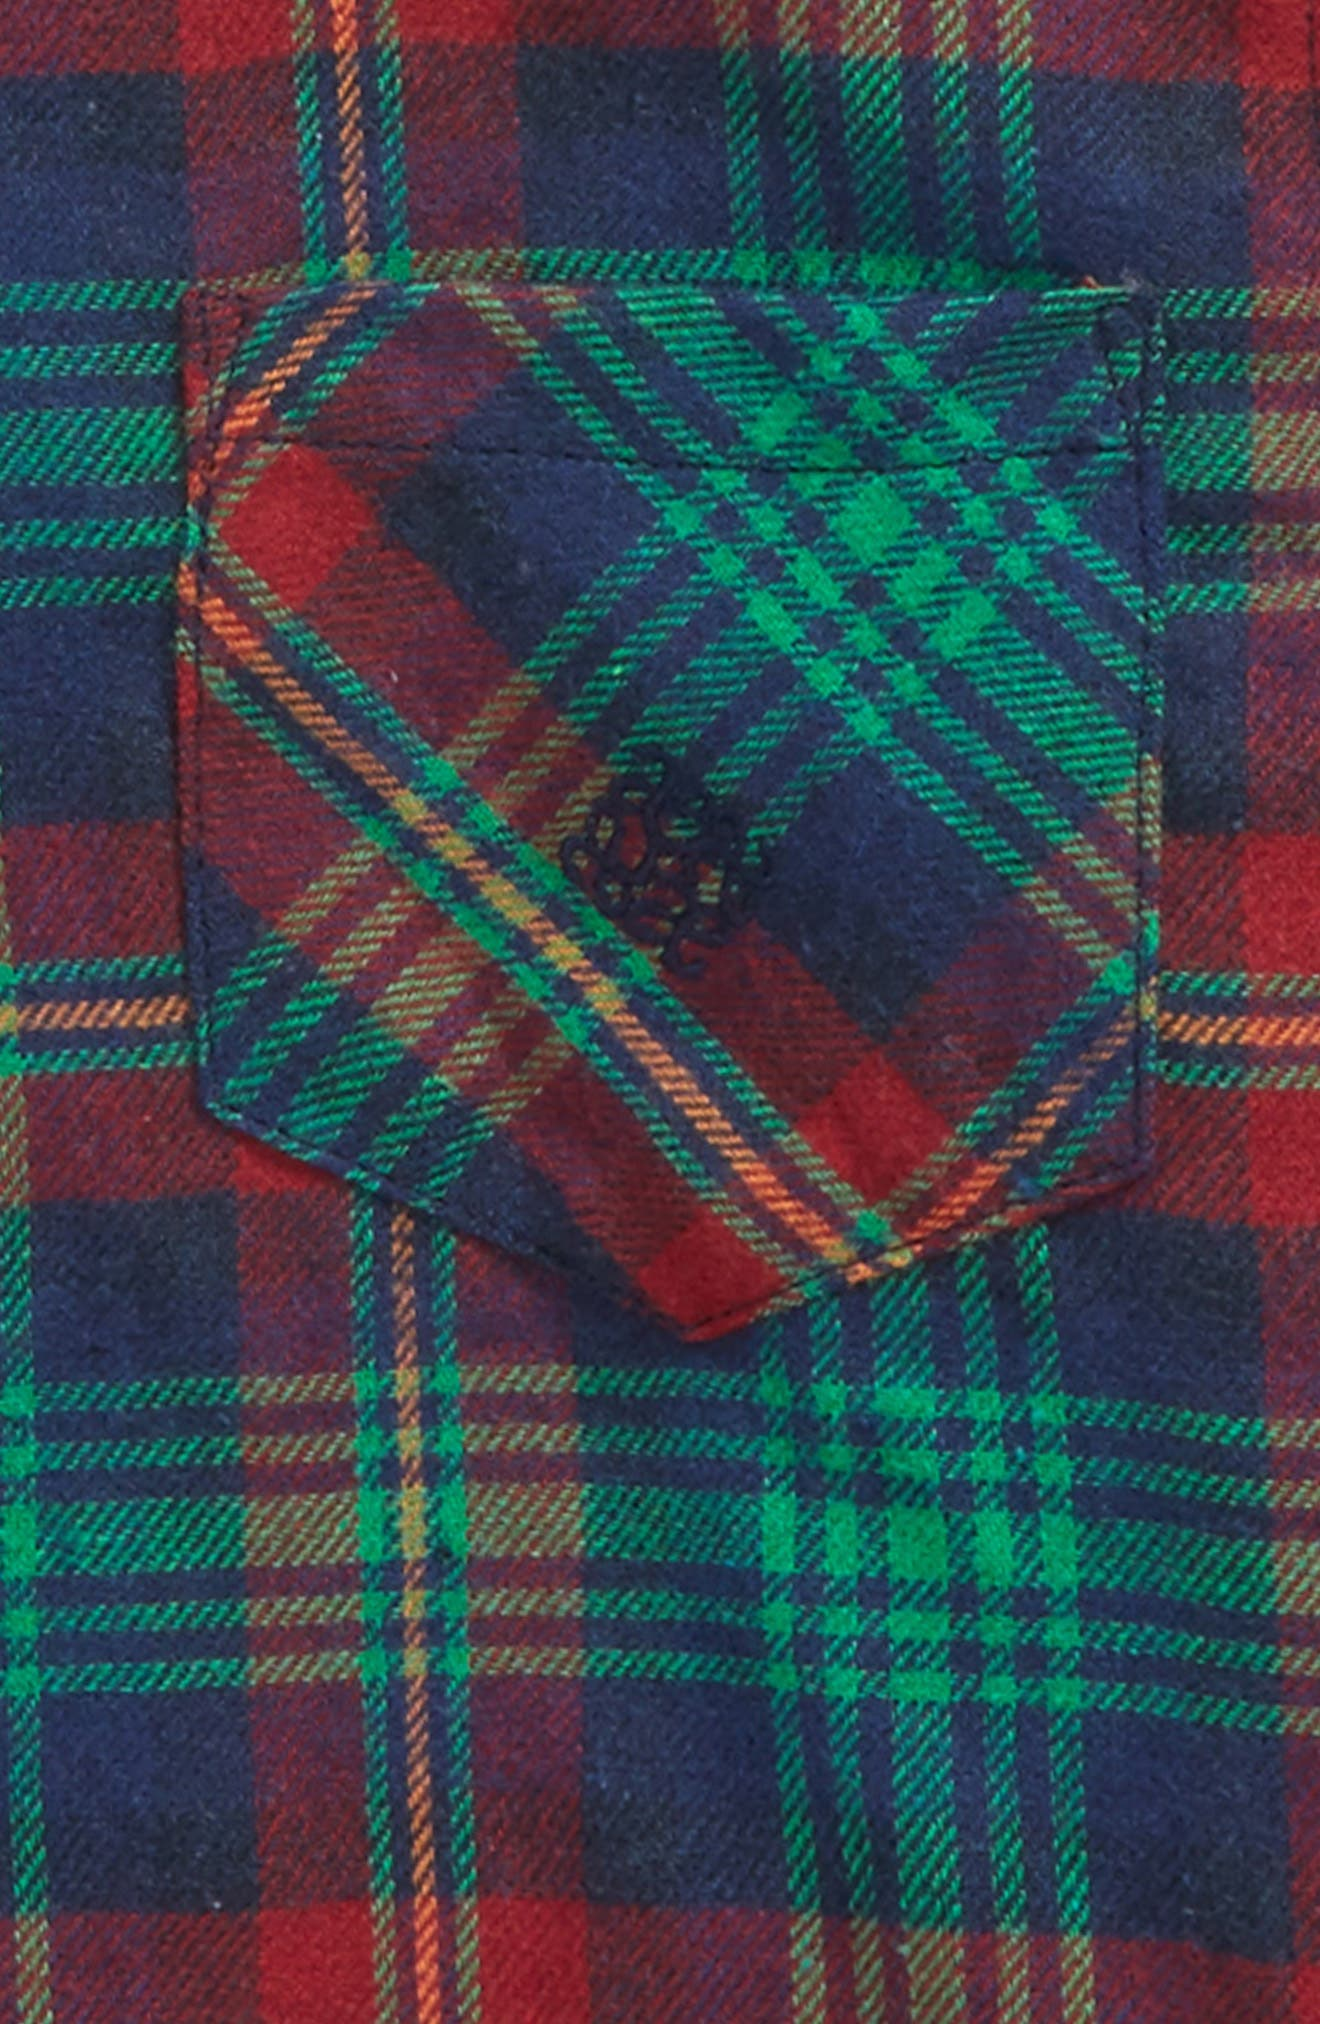 Plaid Woven Shirt,                             Alternate thumbnail 2, color,                             Navy/ Red/ Green